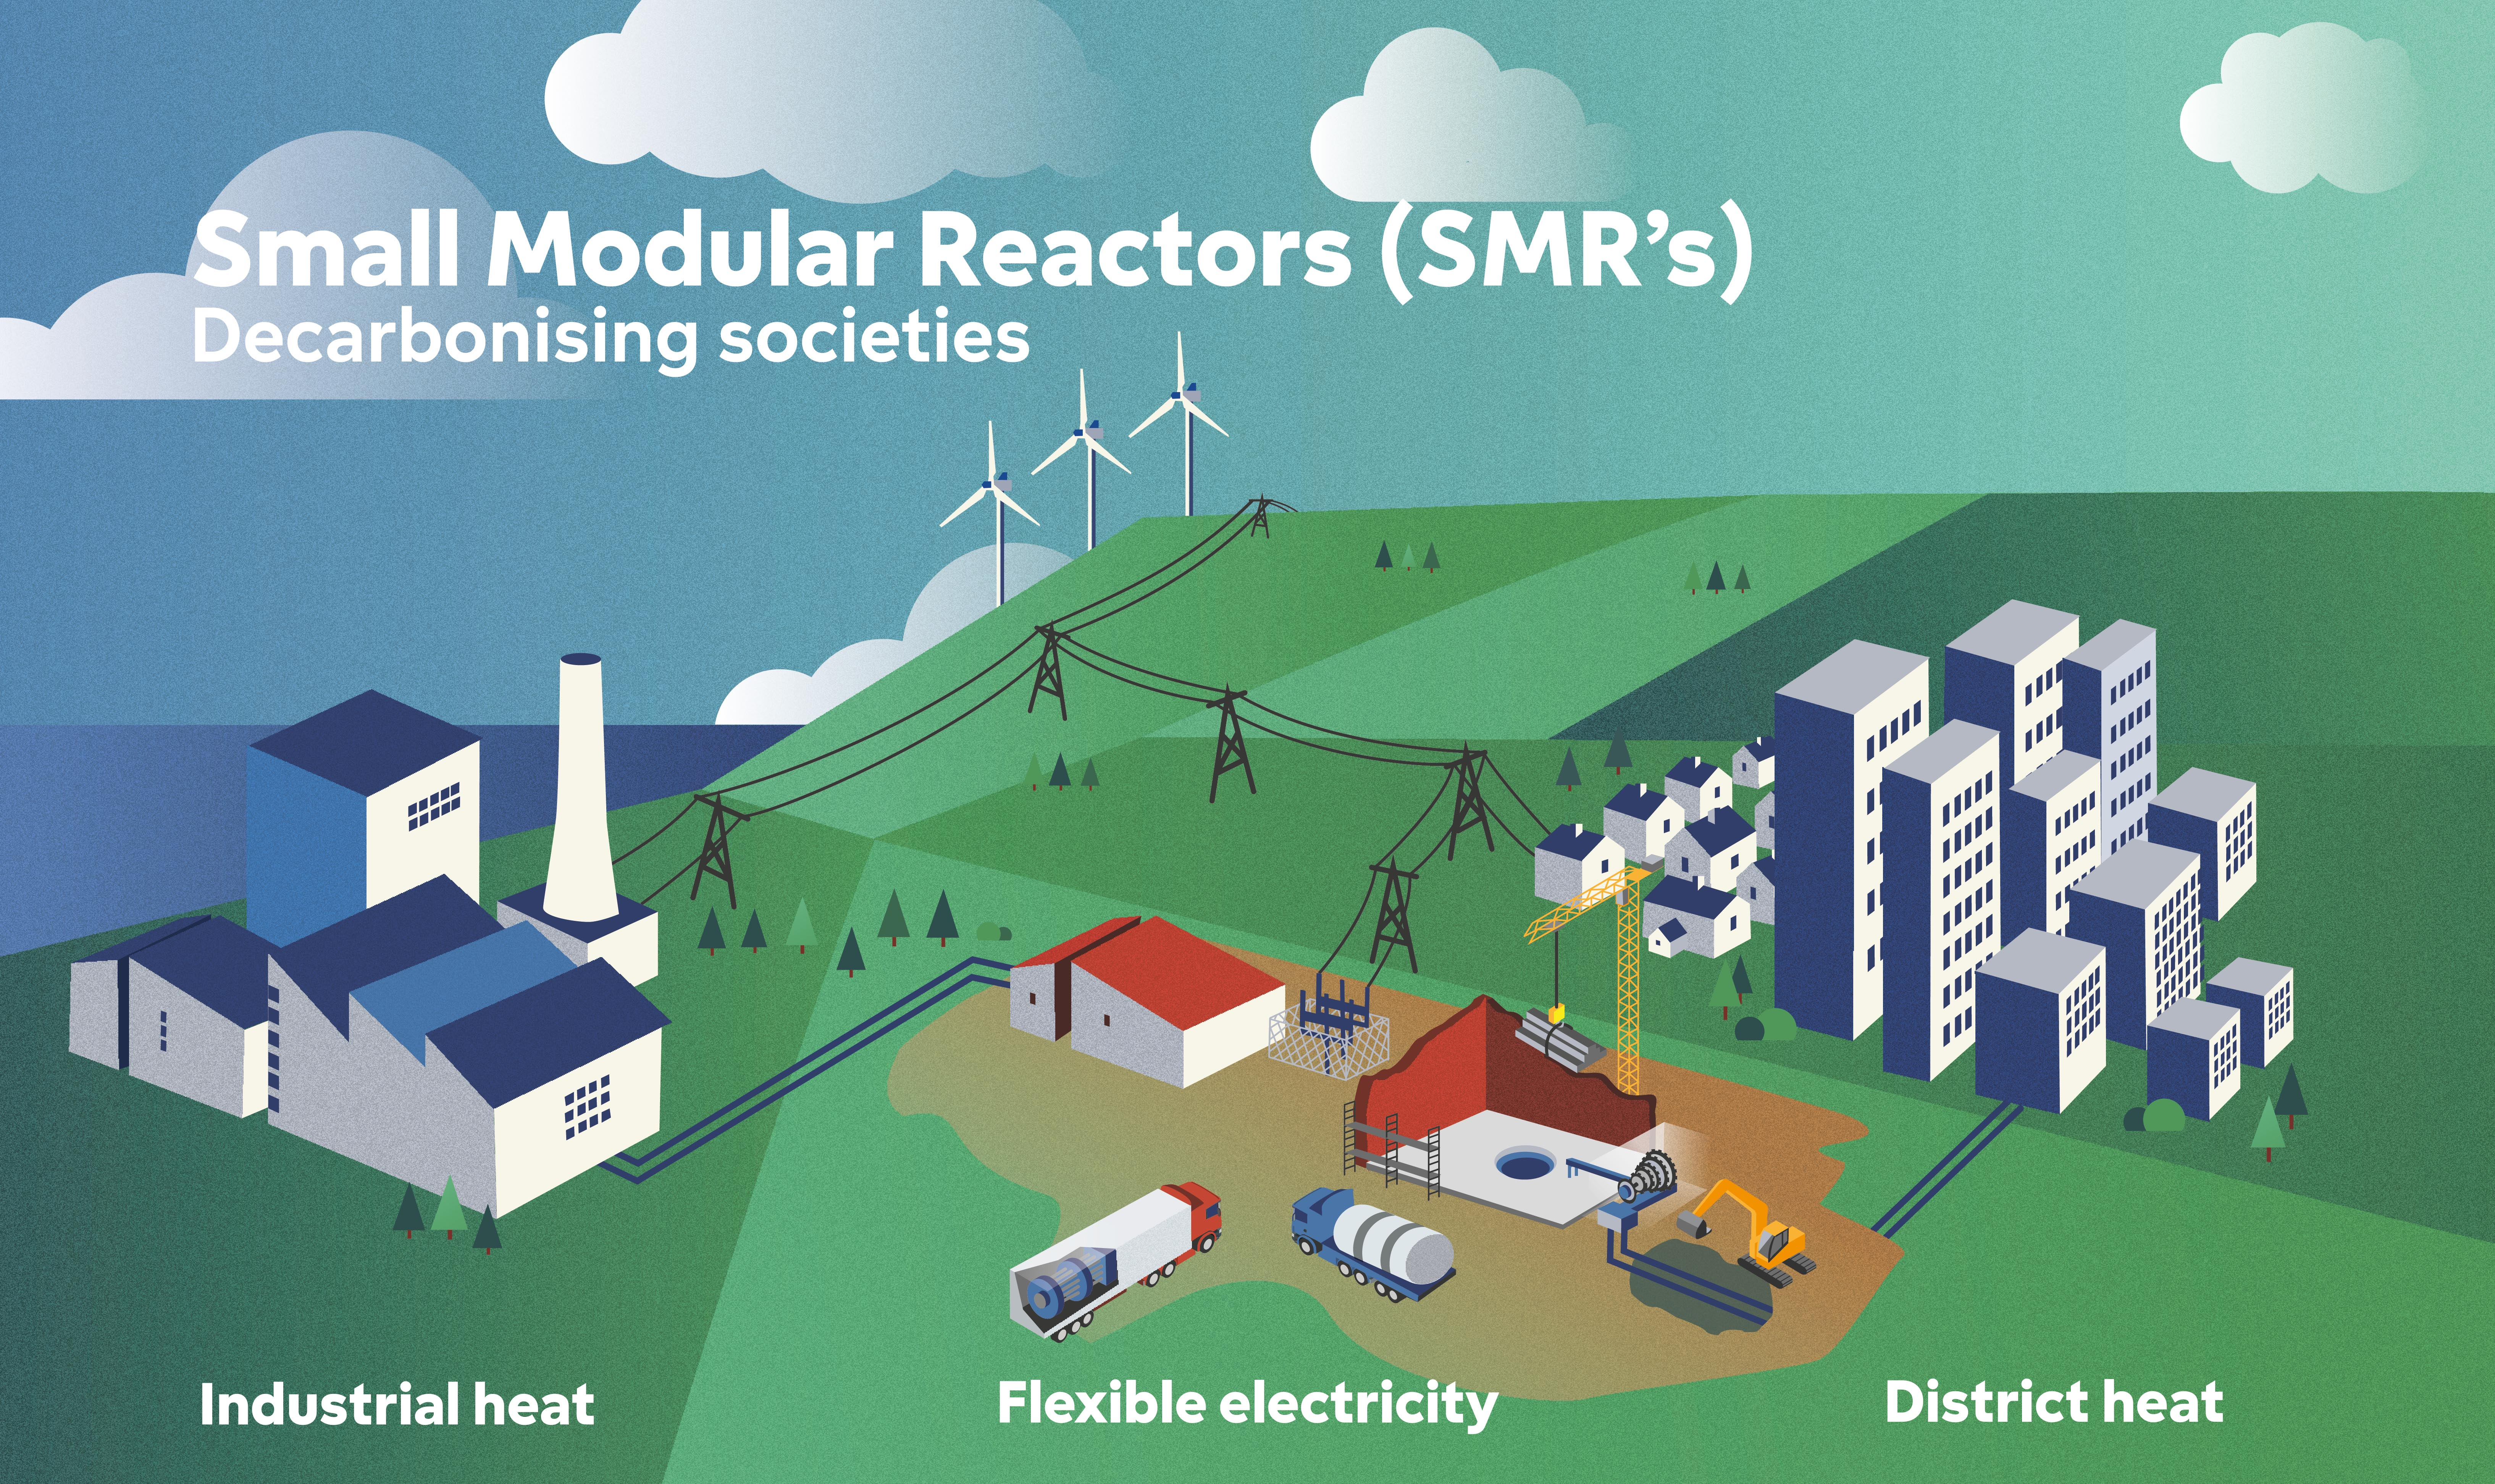 SMRs in district heating